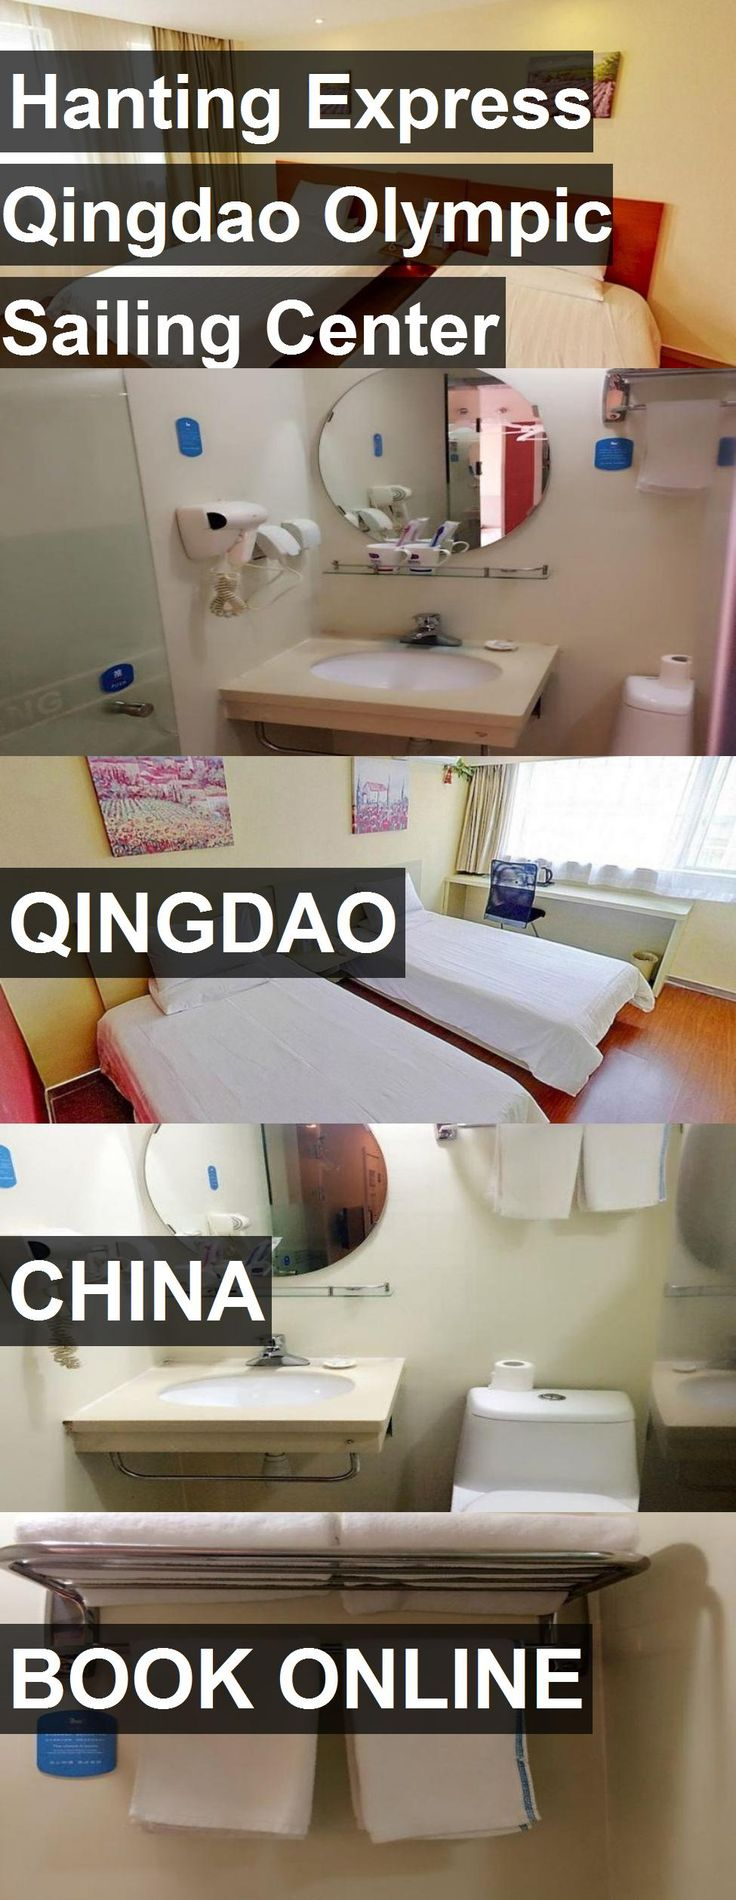 Hotel Hanting Express Qingdao Olympic Sailing Center in Qingdao, China. For more information, photos, reviews and best prices please follow the link. #China #Qingdao #hotel #travel #vacation